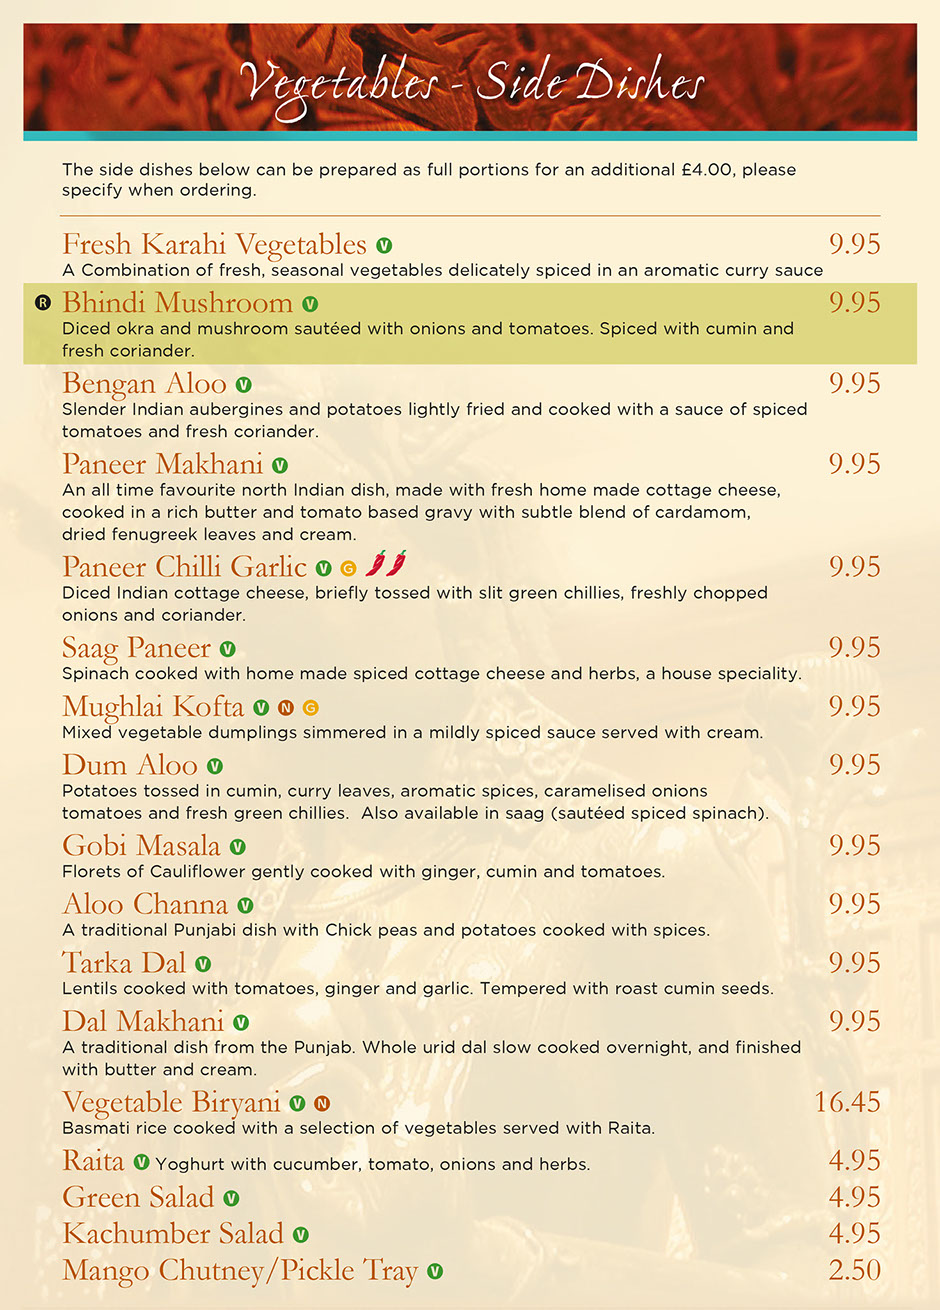 Rajdoot Indian menu - vegetable curries and side dishes